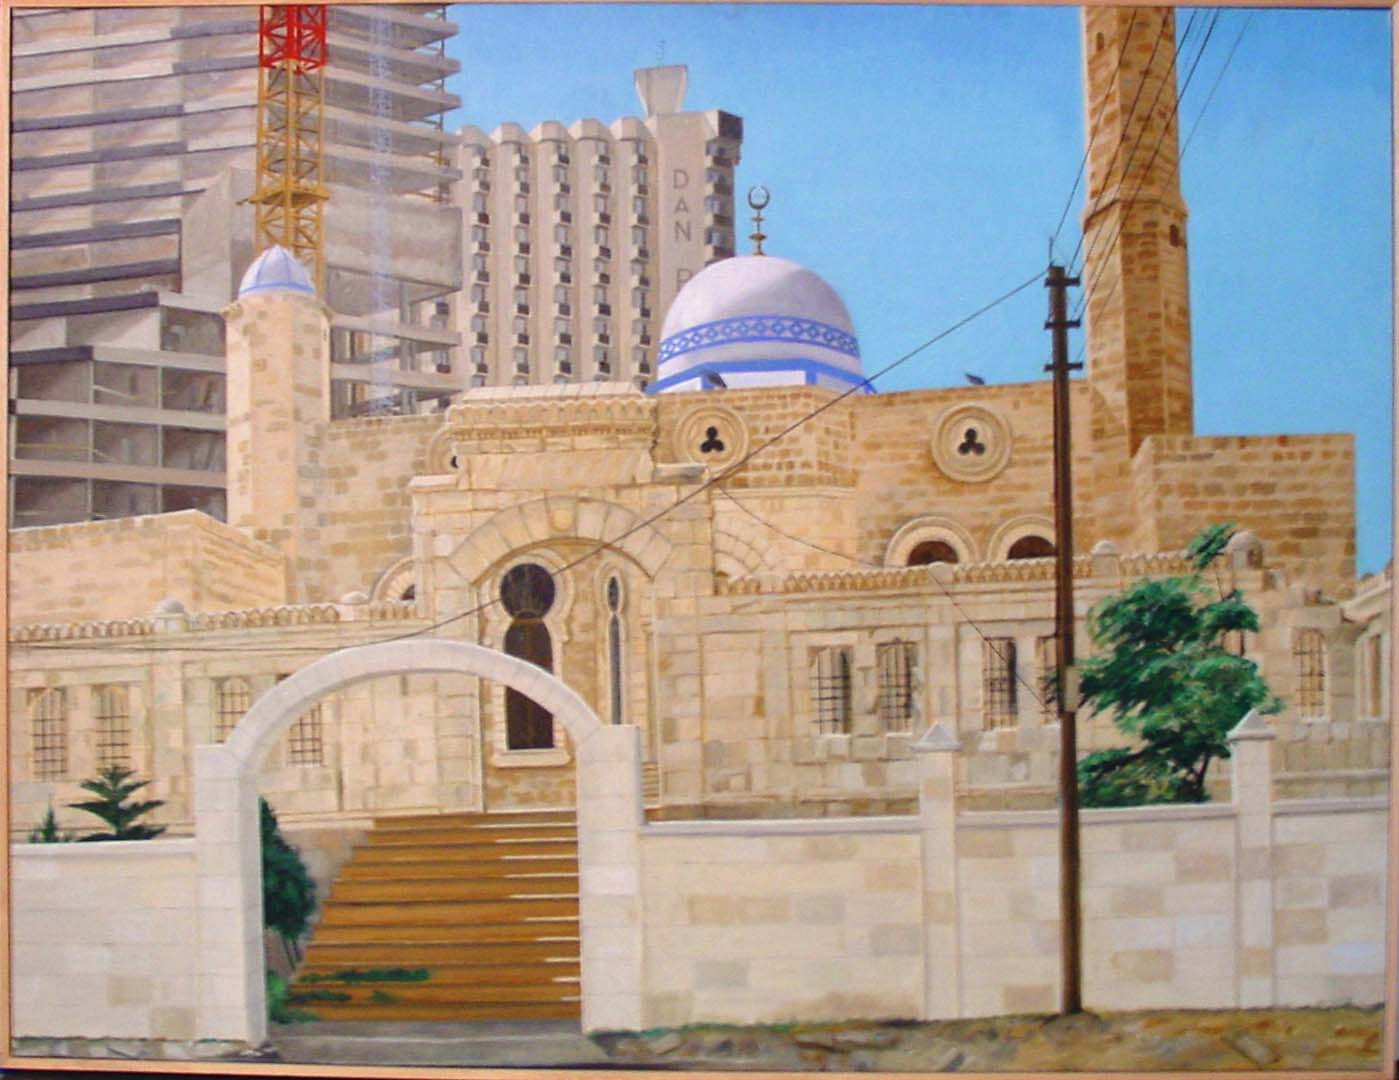 1997 Mosque and New Construction